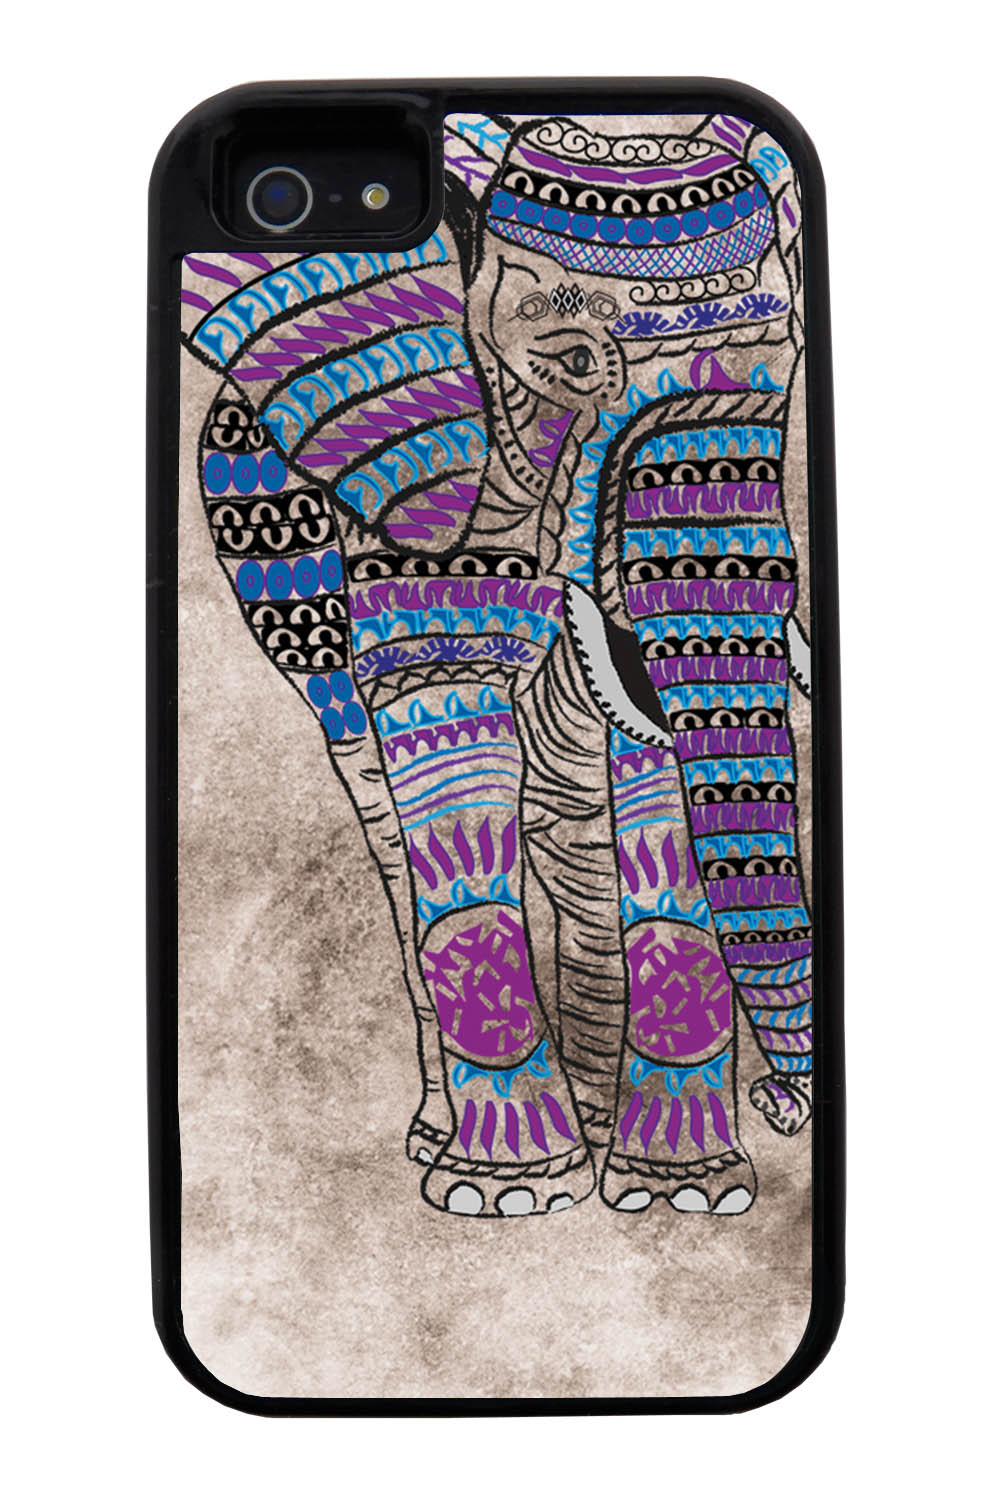 Apple iPhone 5 / 5S Aztec Case - Purple and Blue Charcoal Drawing - Tribal Elephant - Black Tough Hybrid Case